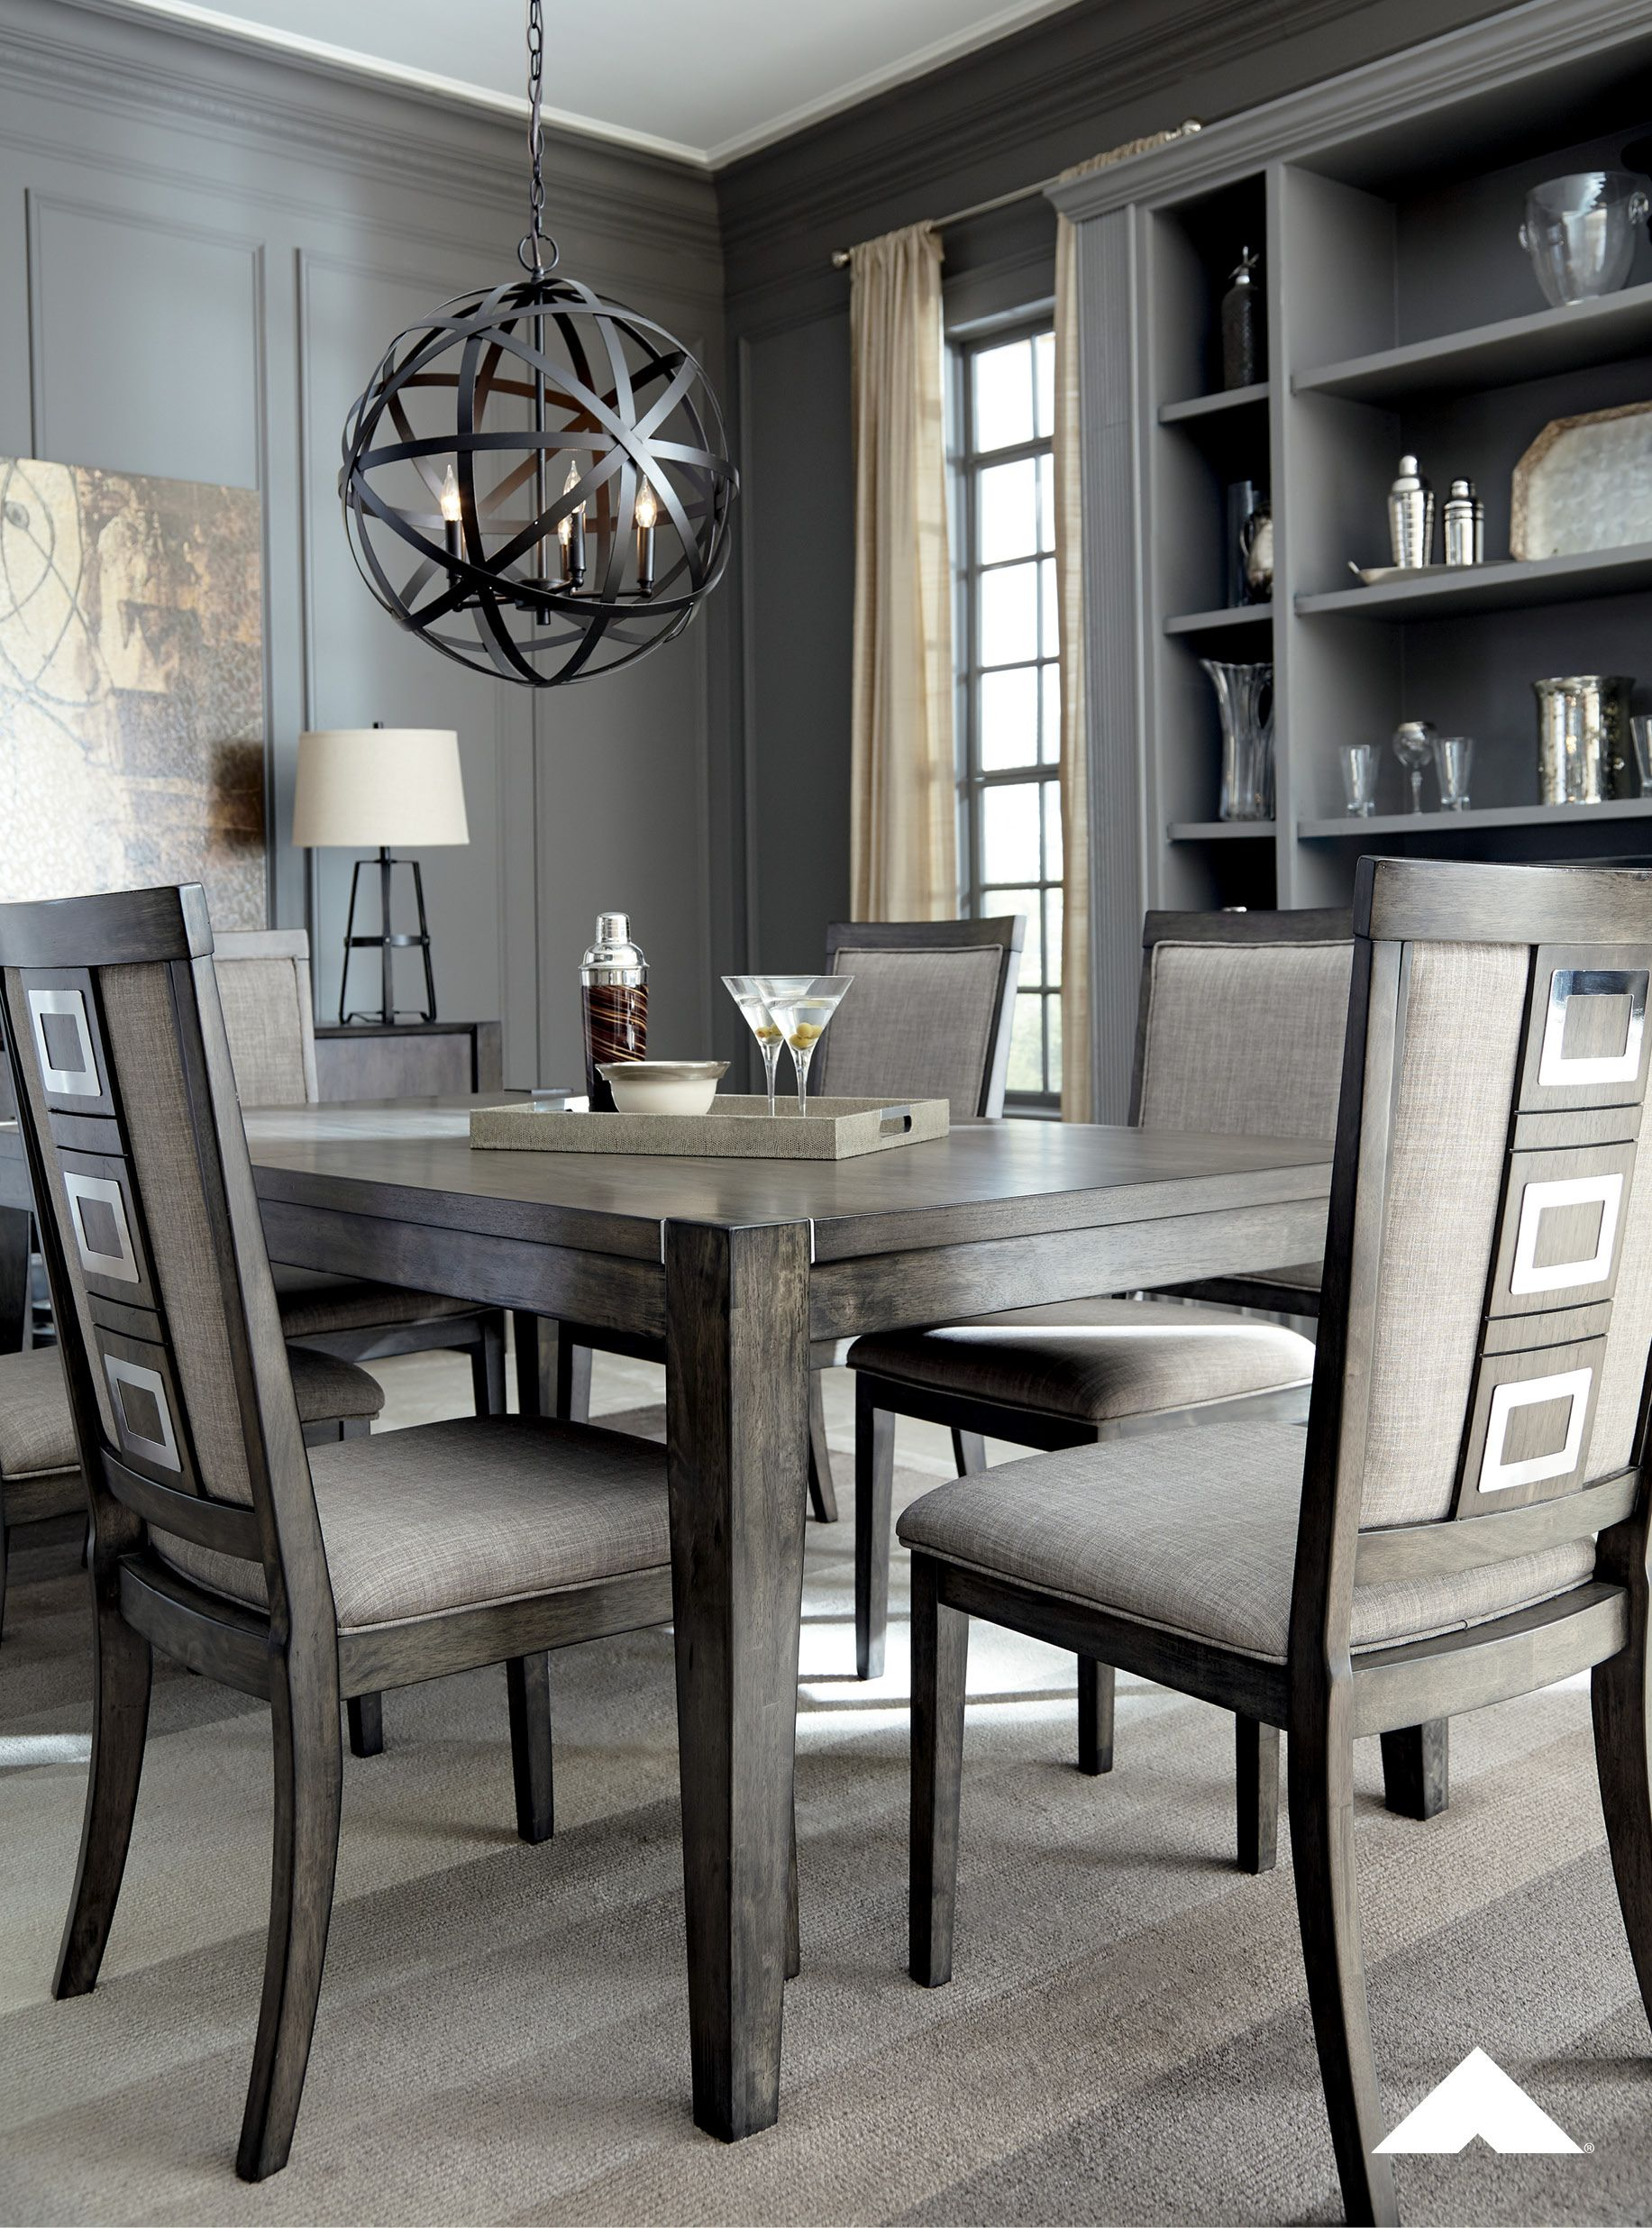 Chadoni Gray Dining Chair Cheers To This Dining Room Chair For Serving Up High End Design Mi With Images Grey Dining Room Table Grey Dining Tables Dining Room Table Set